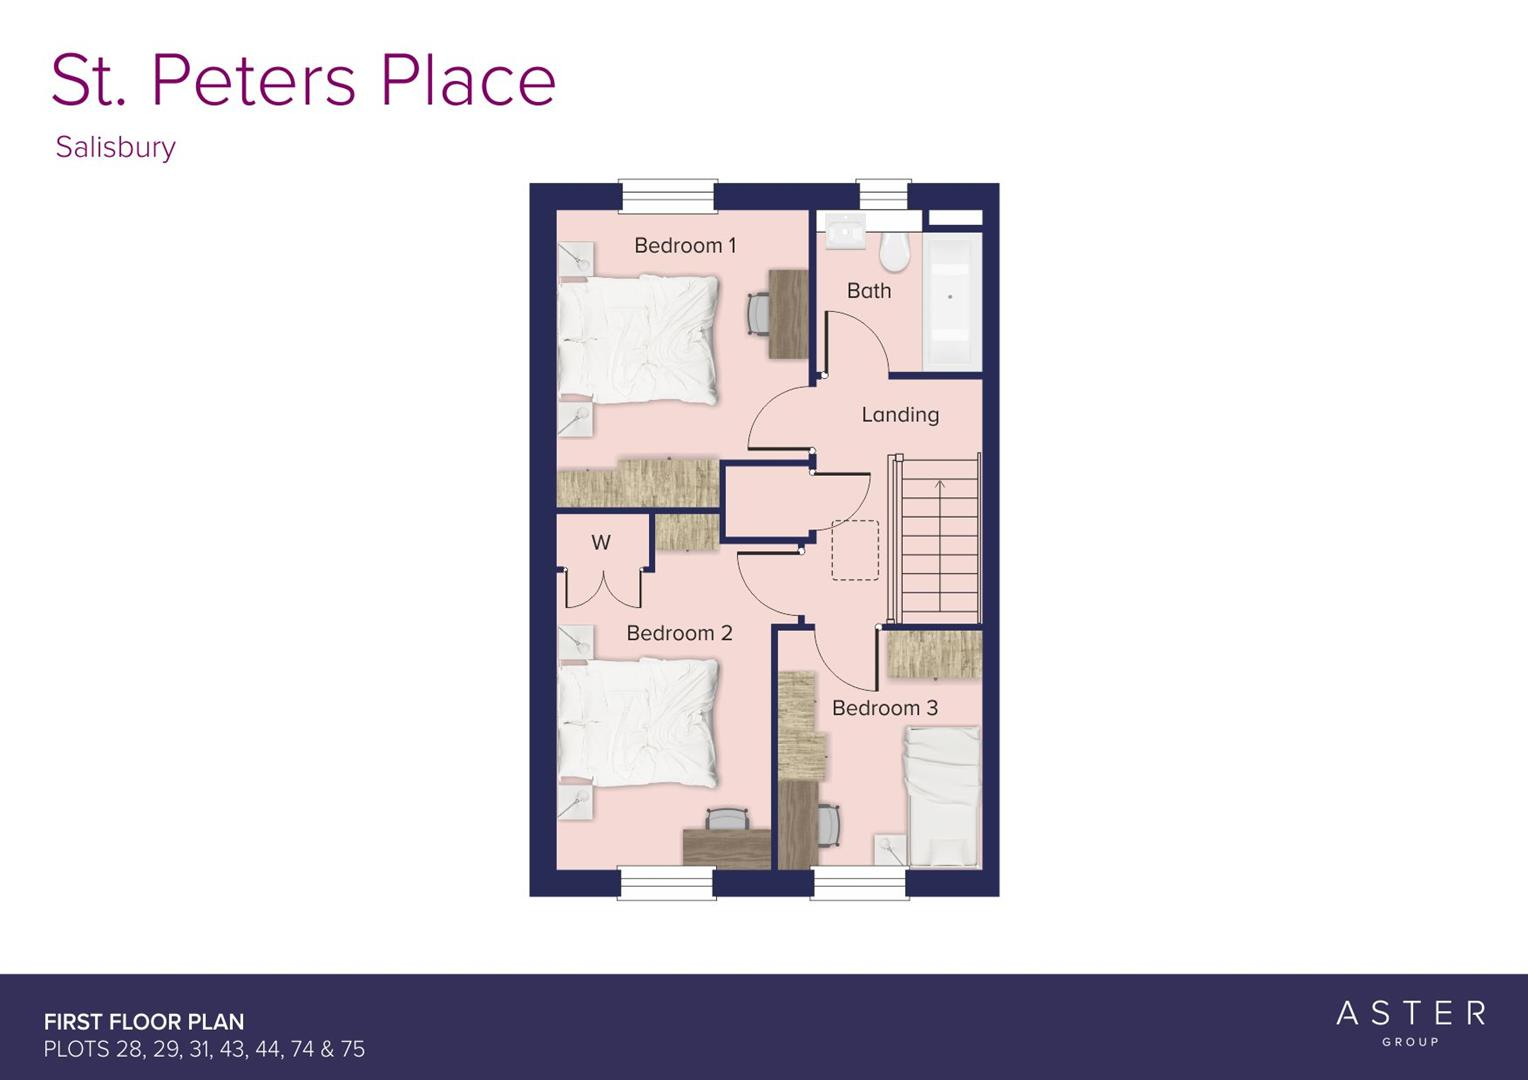 St. Peters Place, Salisbury_Plots 28, 29, 31, 43,